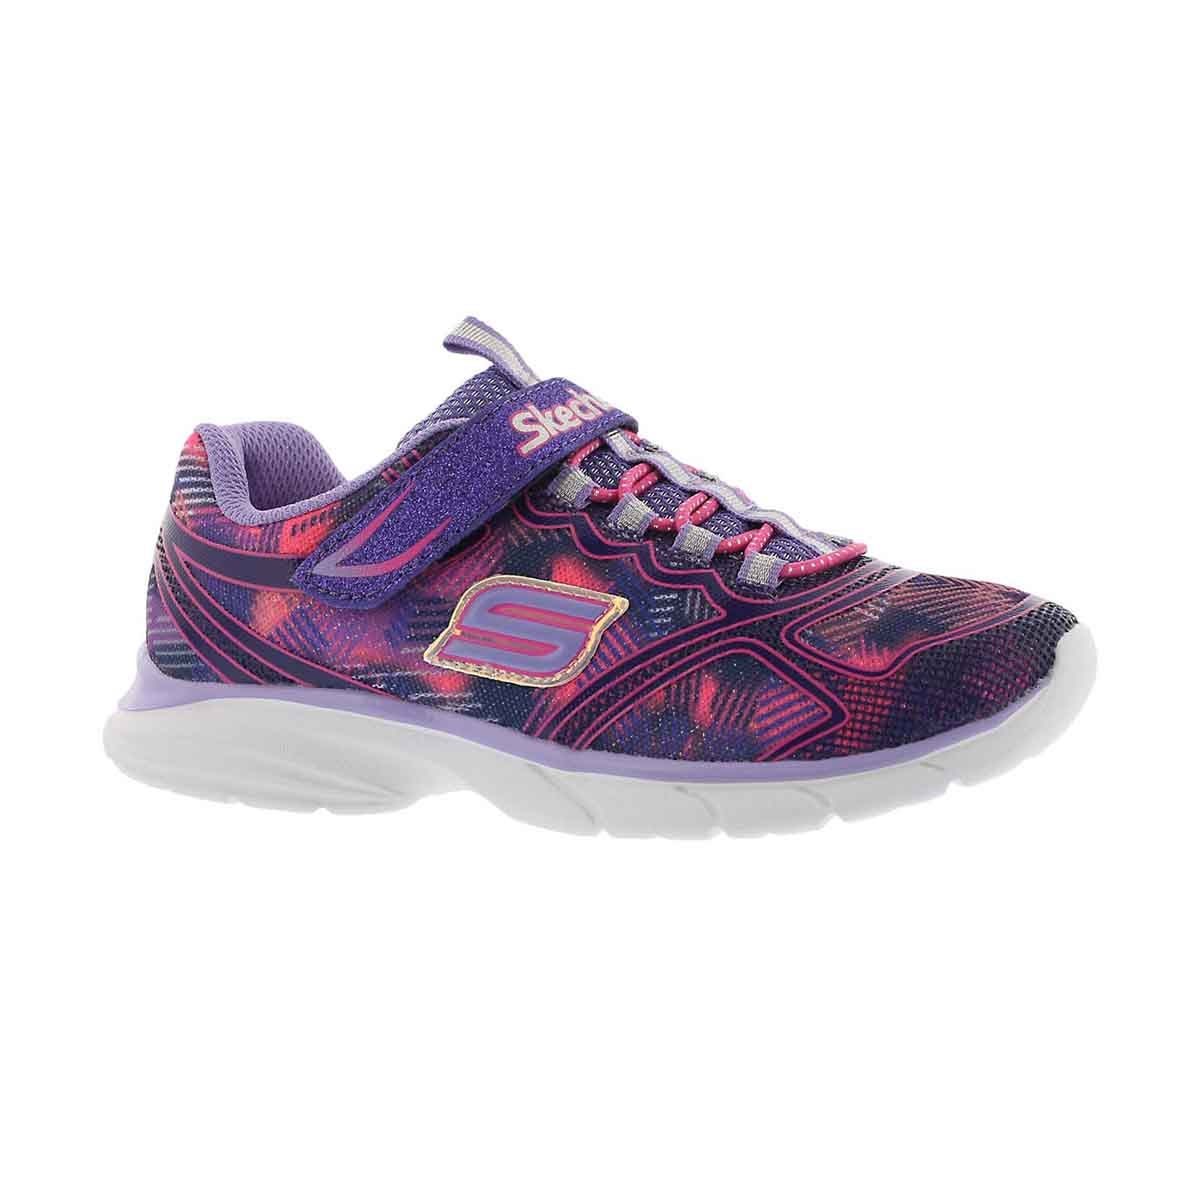 Girls' SPIRIT SPRINTZ purple sneaker